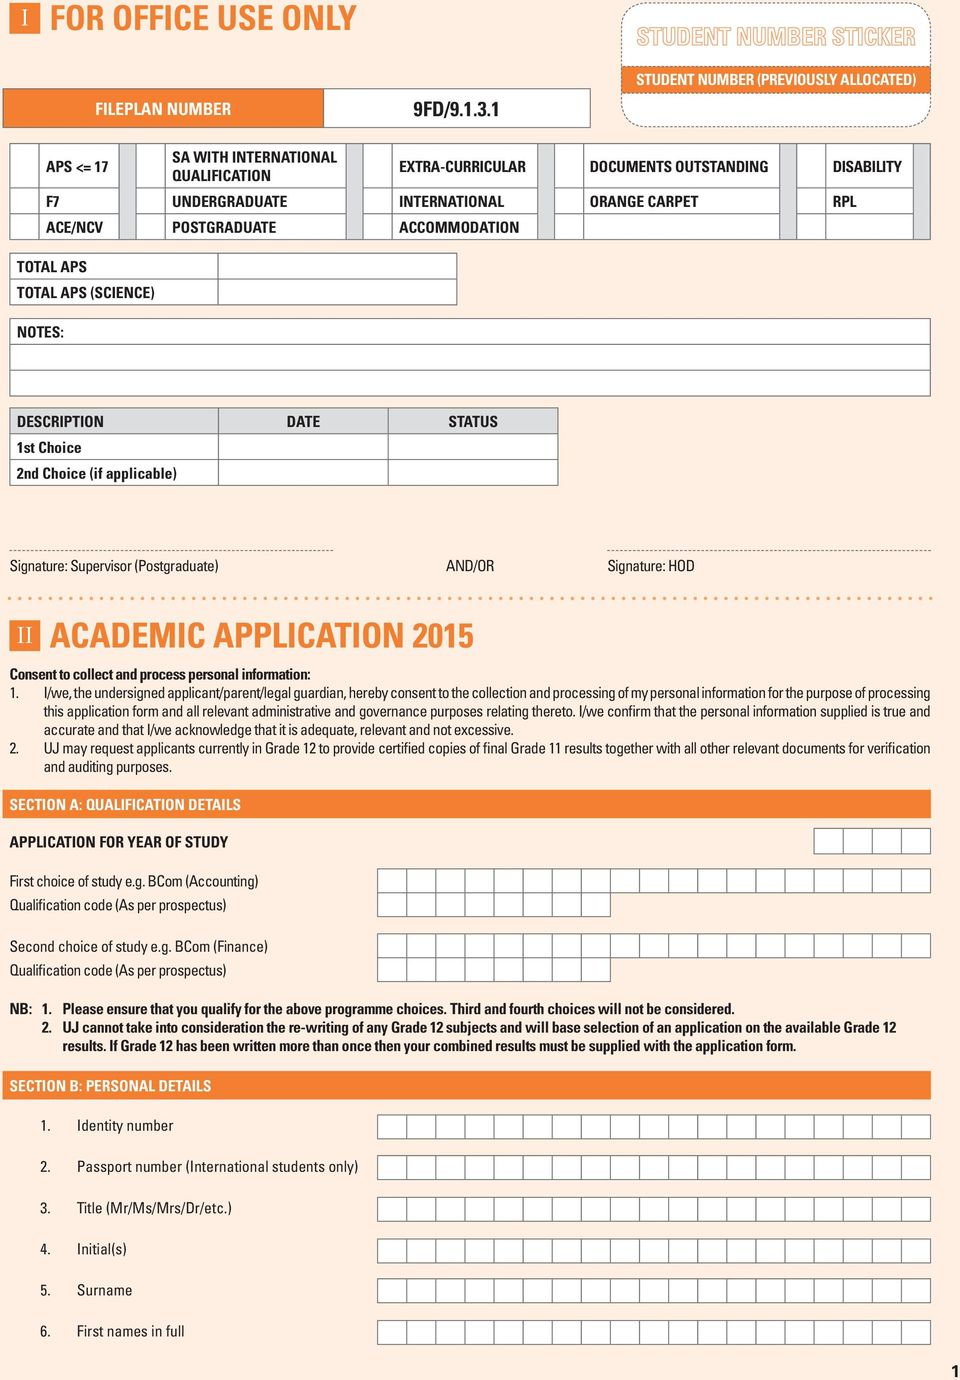 POSTGRADUATE ACCOMMODATION TOTAL APS TOTAL APS (SCIENCE) NOTES: DESCRIPTION DATE STATUS 1st Choice 2nd Choice (if applicable) Signature: Supervisor (Postgraduate) AND/OR Signature: HOD II ACADEMIC